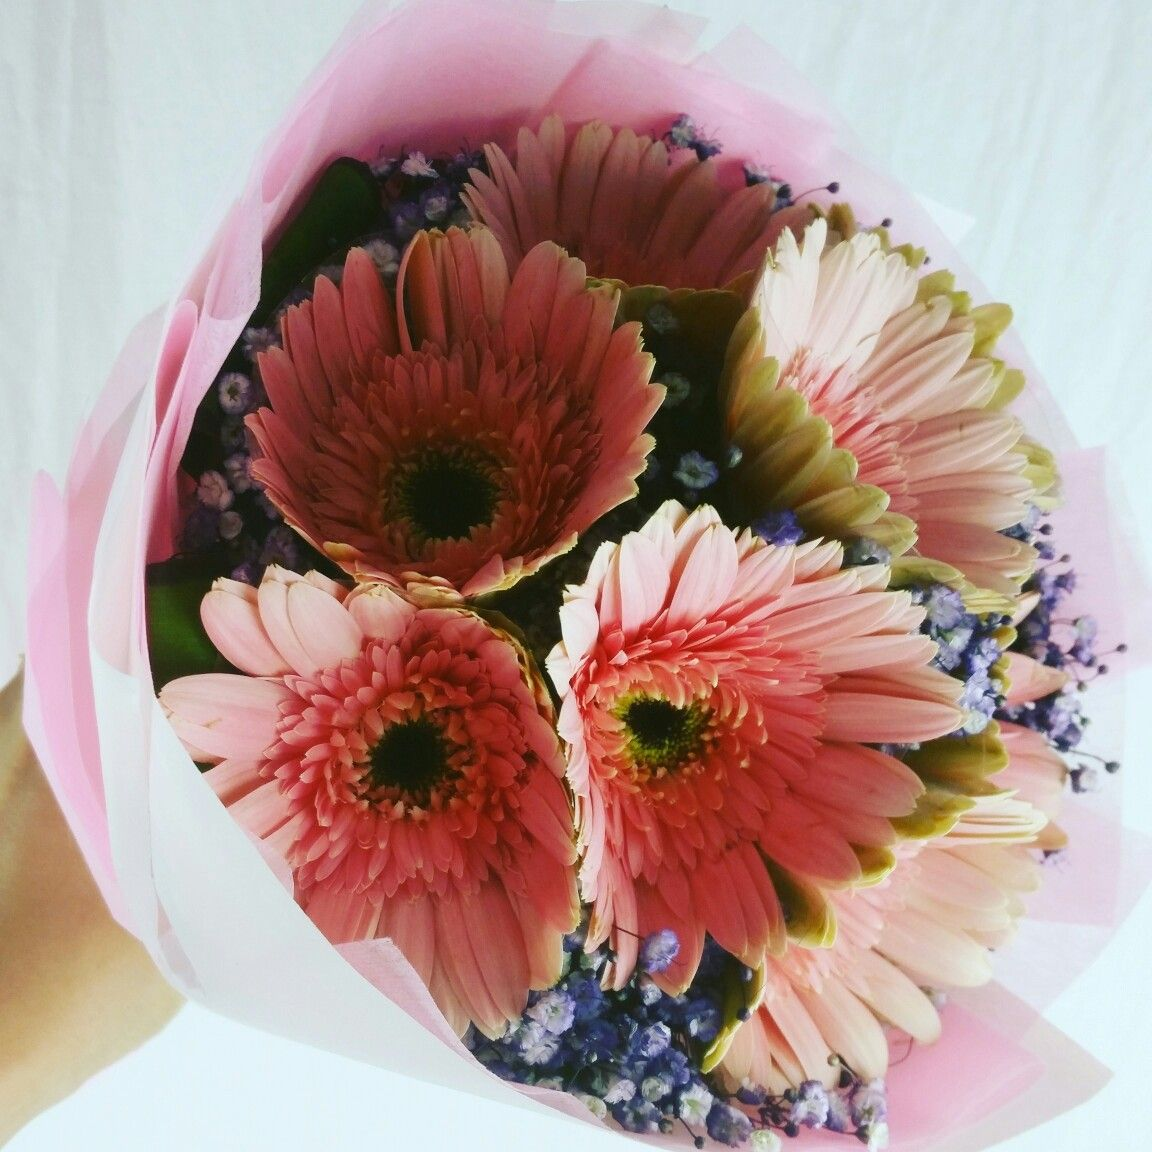 Happy Weekend. Send flower delivery Singapore to brighten